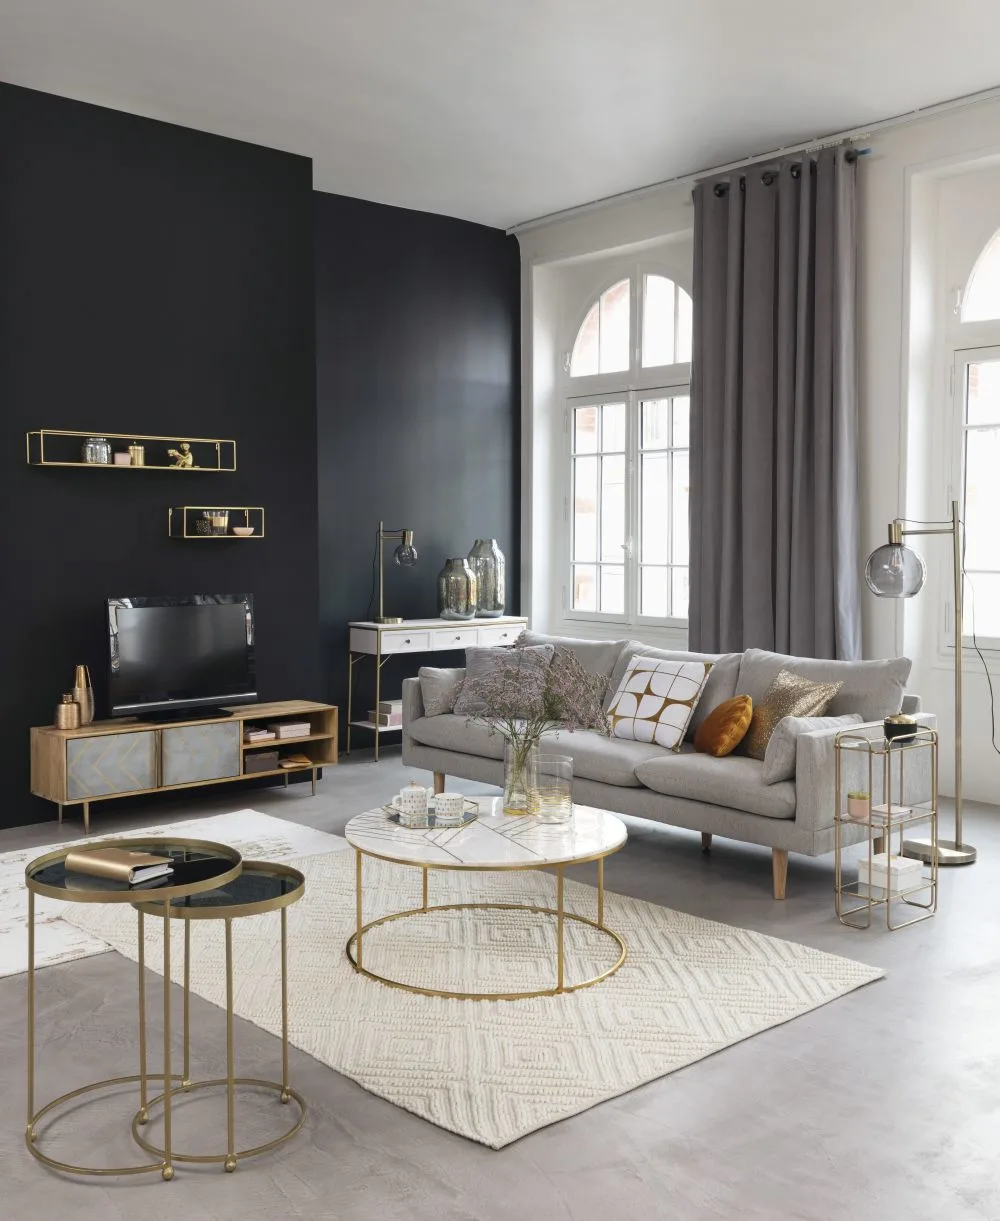 Gold Iron And White Marble Round Coffee Table Izmir Maisons Du Monde Gold Living Room Decor Accent Walls In Living Room Gold Living Room [ 1221 x 1000 Pixel ]